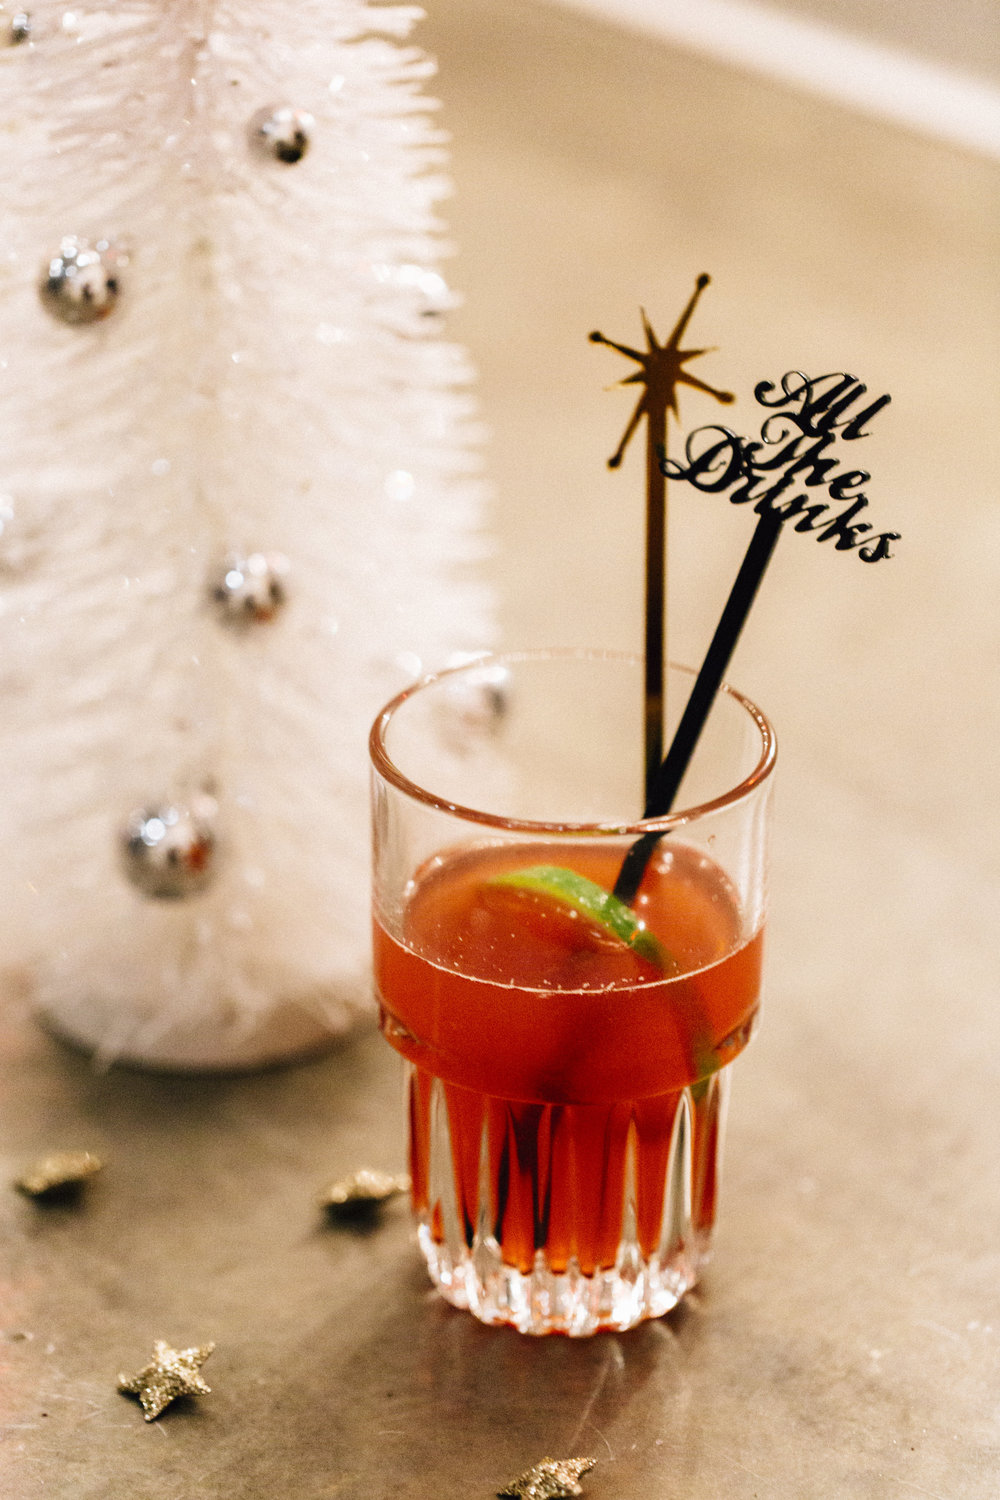 Holiday Mixology Class - Styling by Ashley Spence